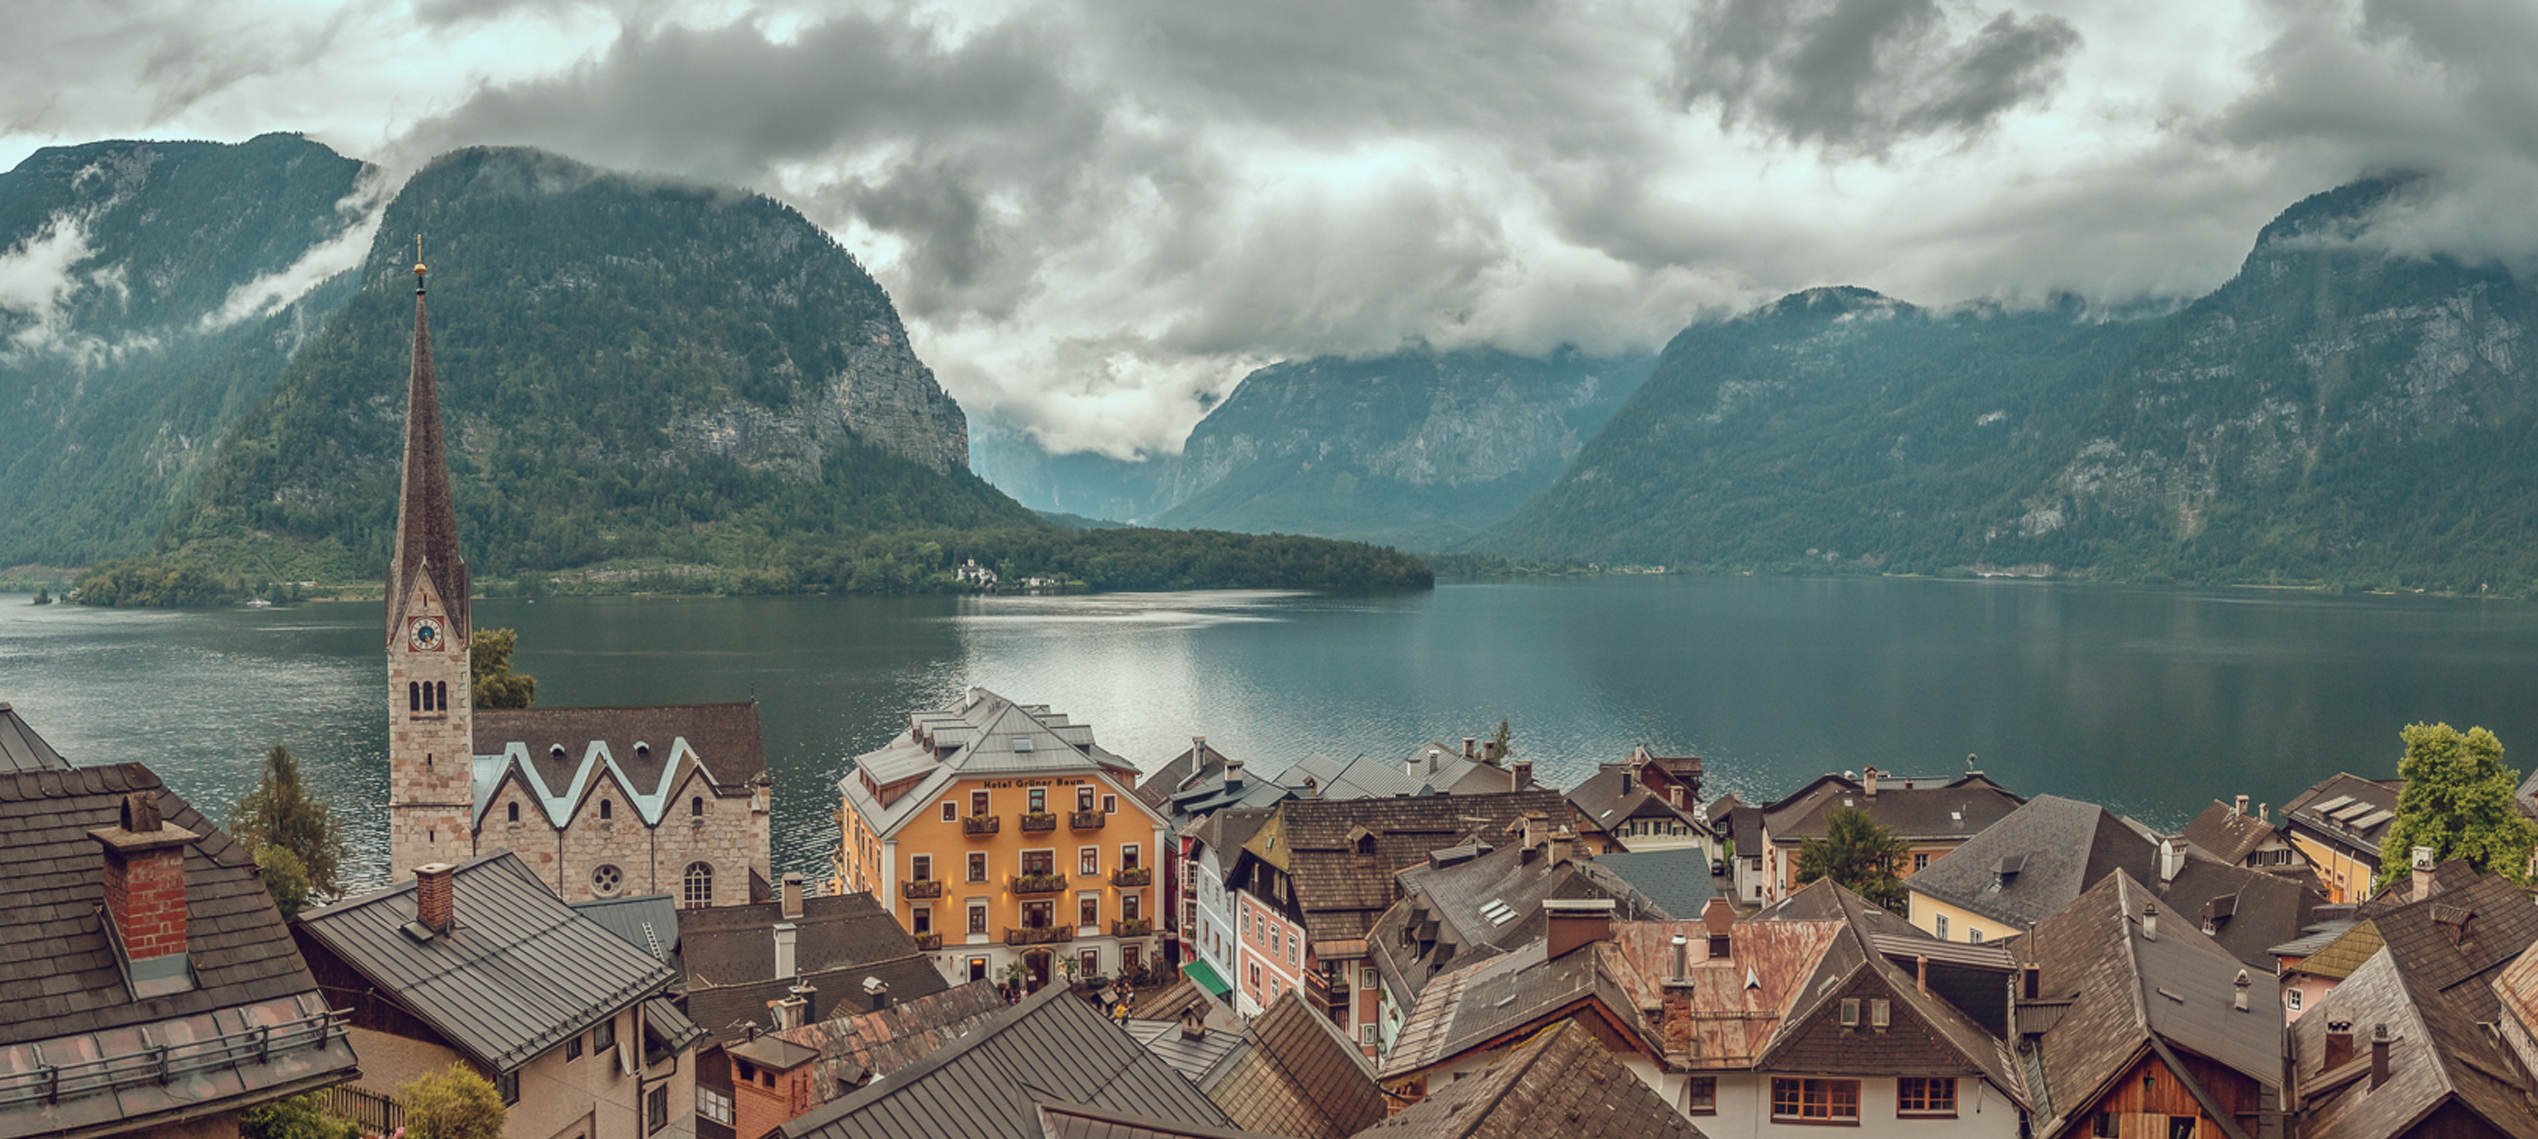 Hallstatt in July 2016 VLOG